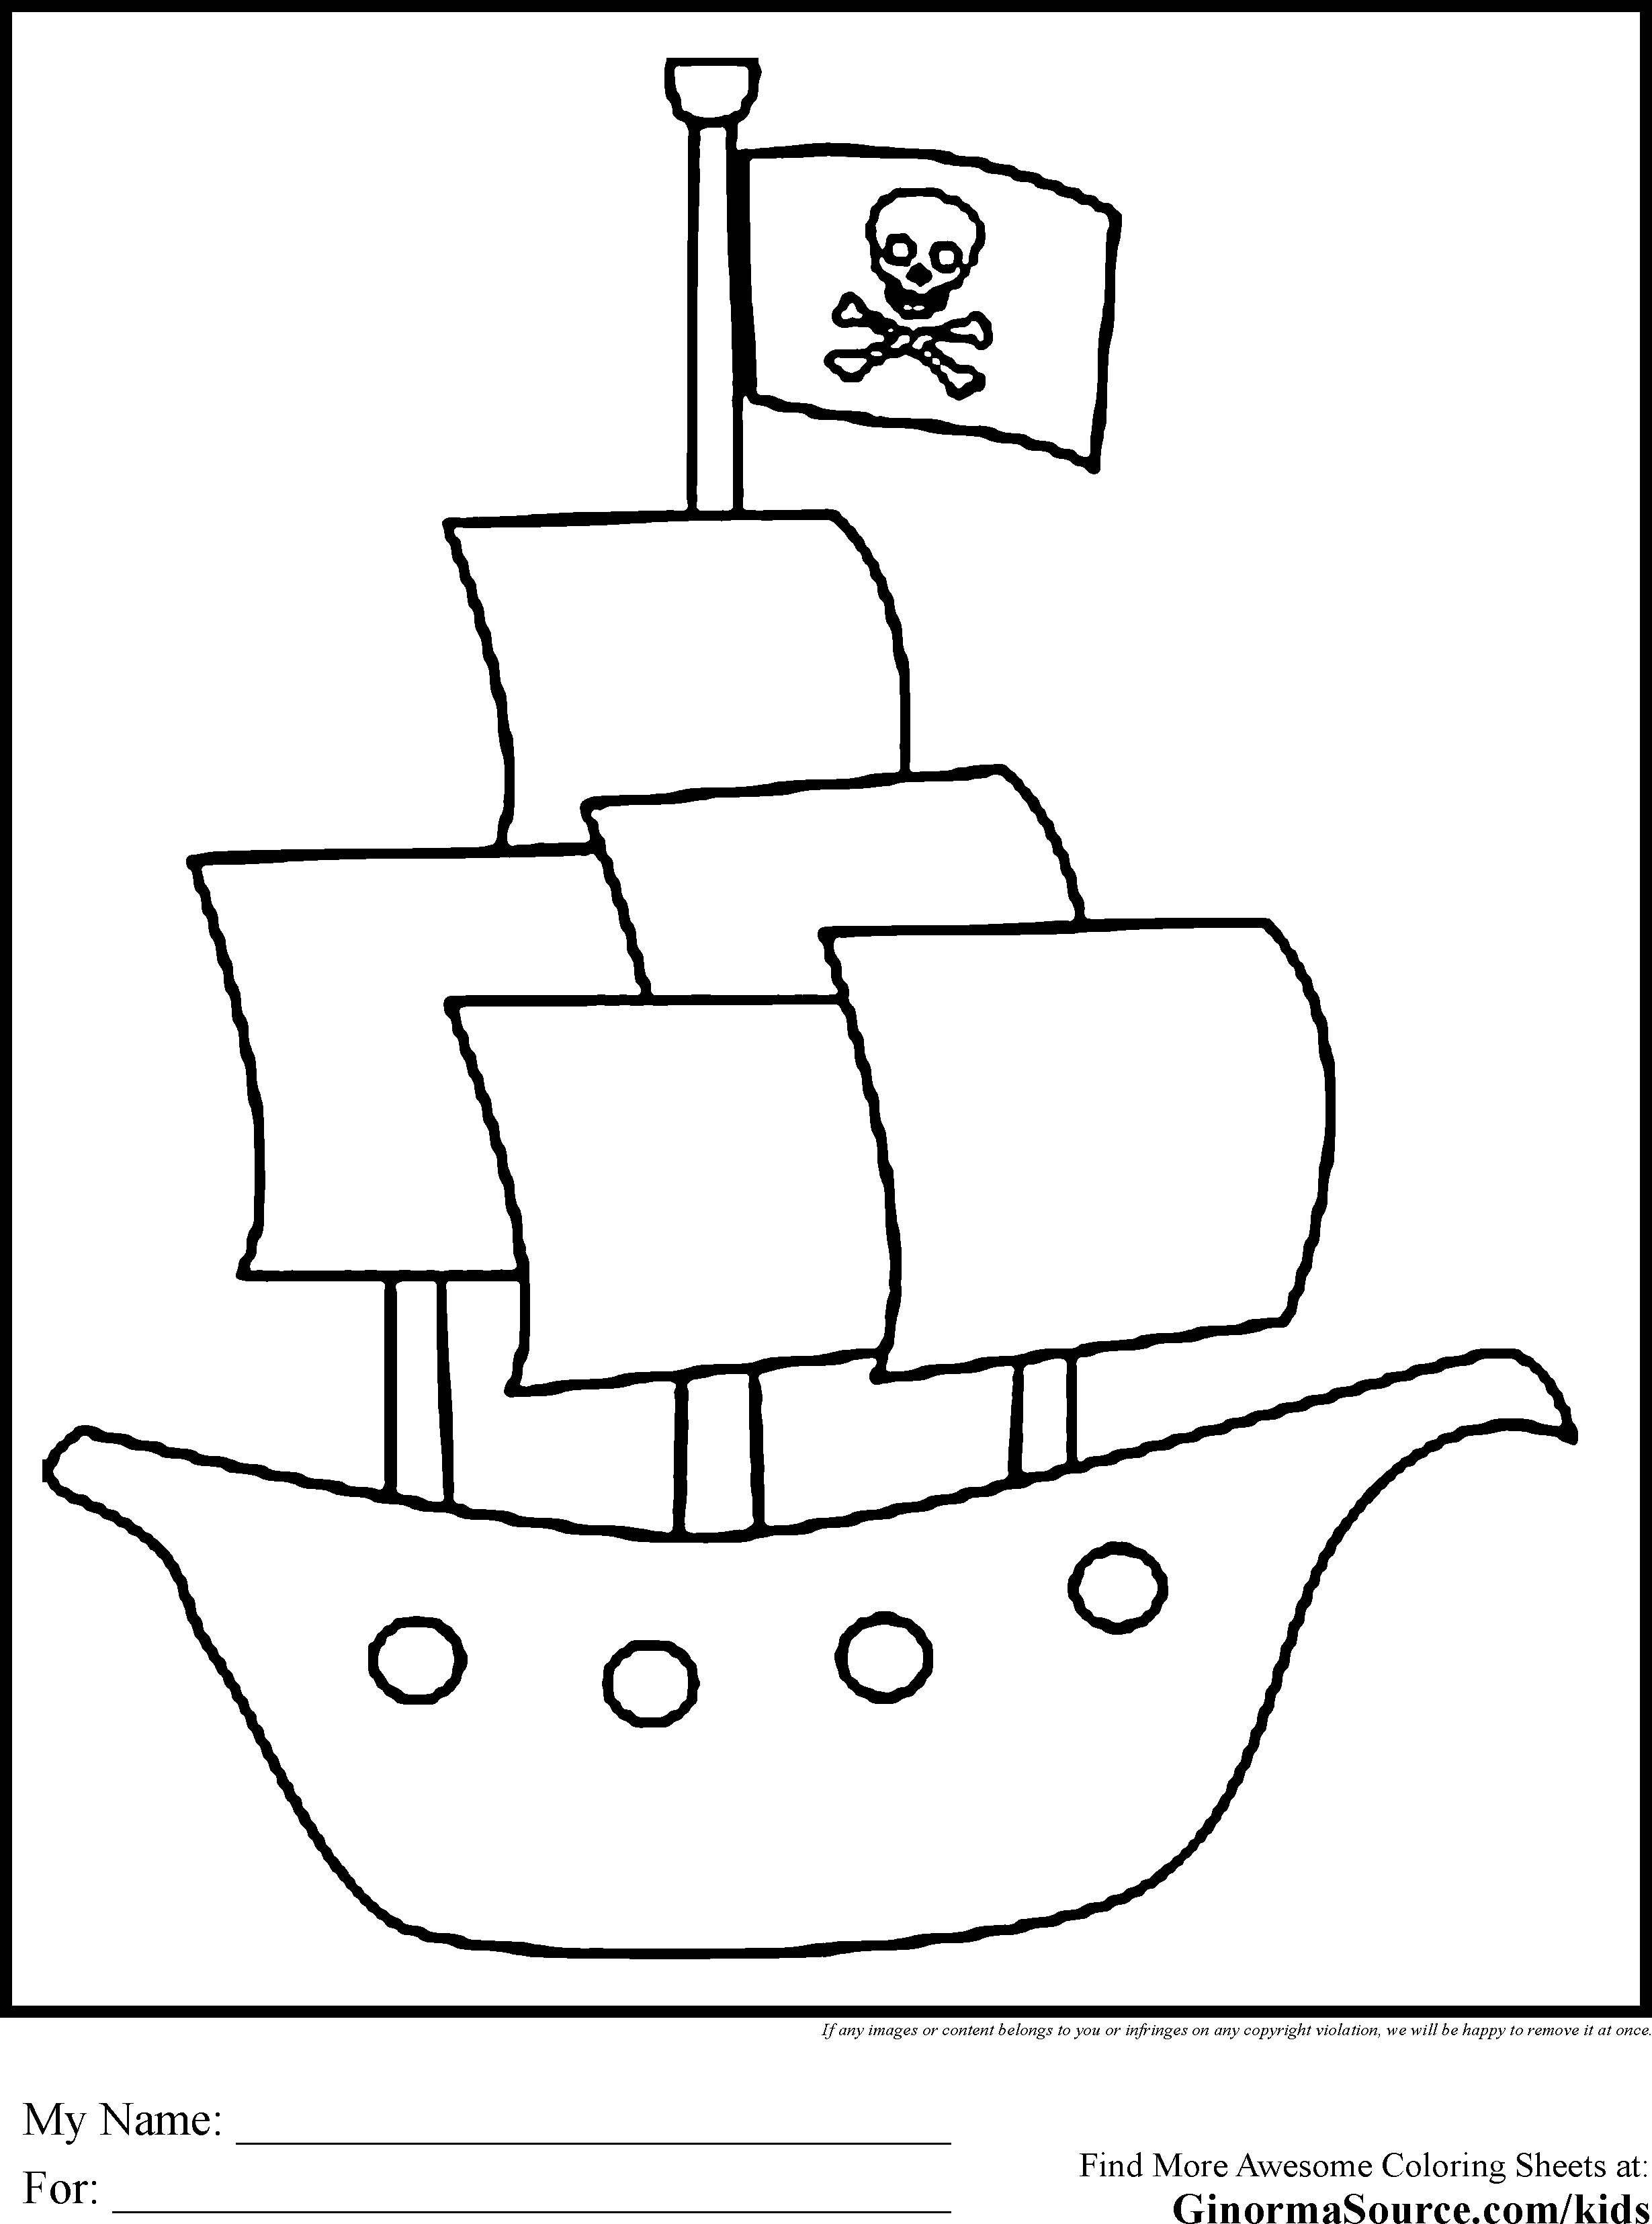 Pirate Coloring Pages Ship Gif 2 459 3 310 Pixels Pirate Coloring Pages Cartoon Pirate Ship Pirate Crafts